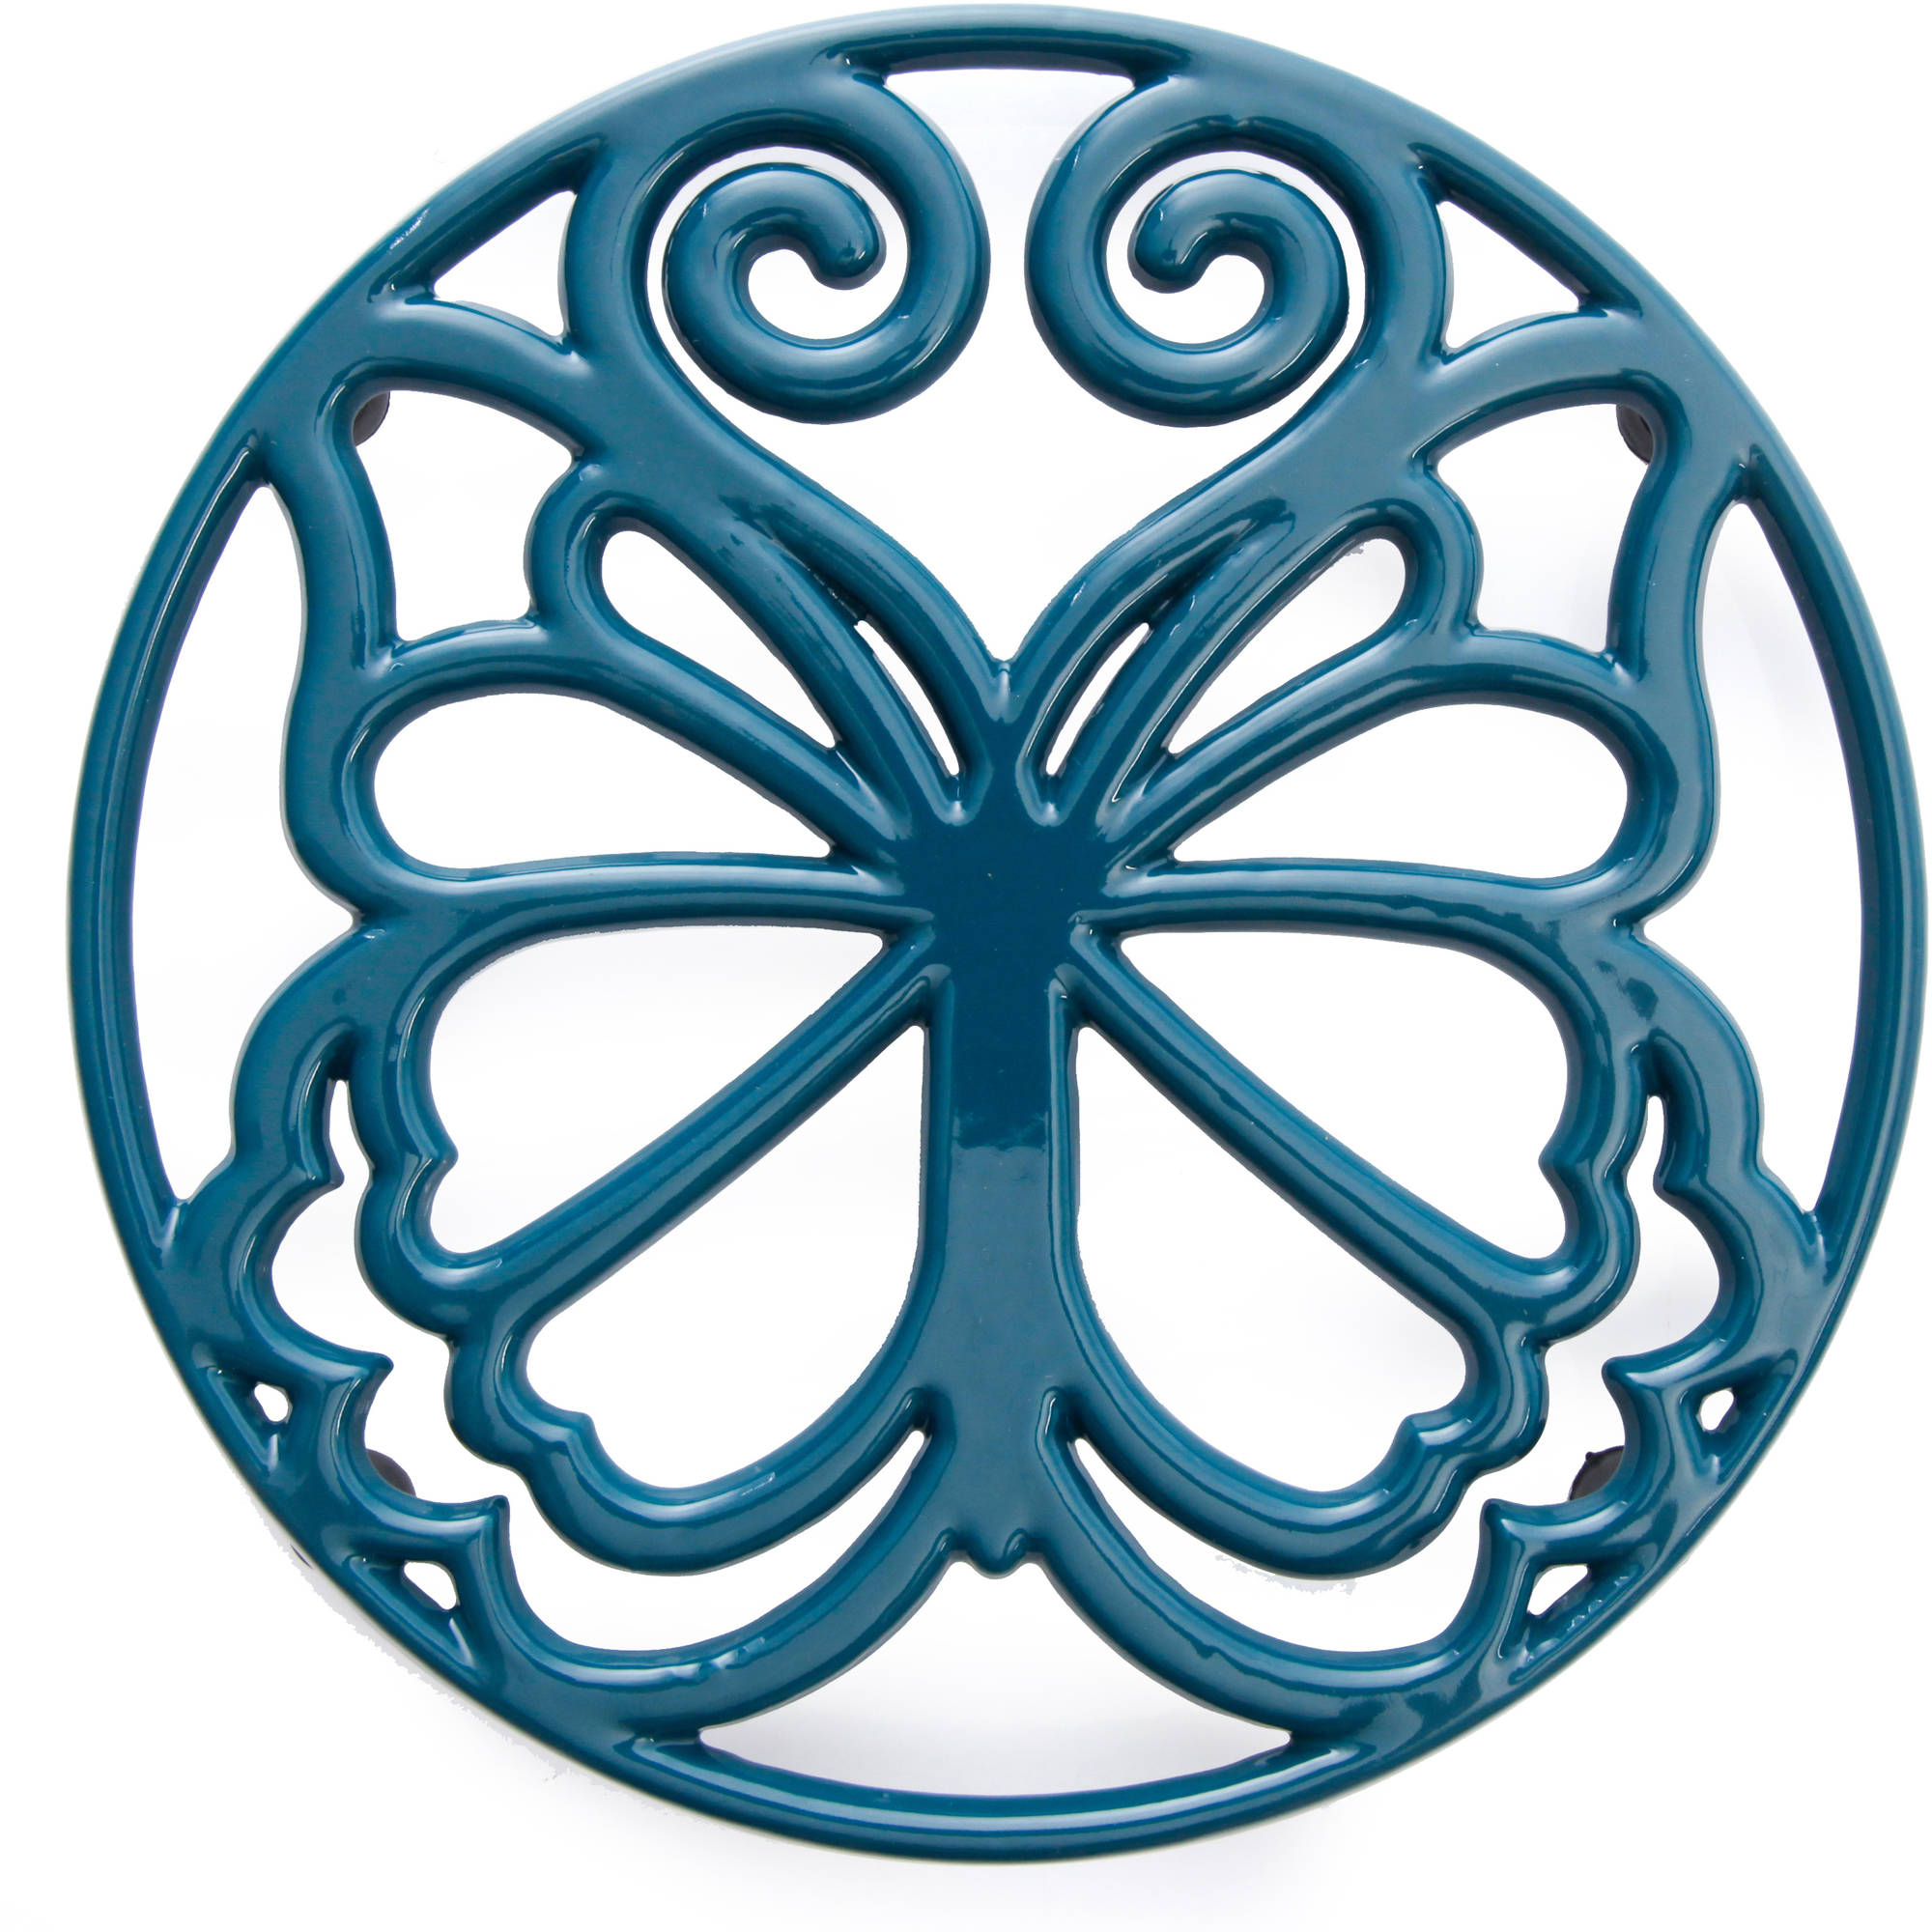 The Pioneer Woman Timeless Beauty 8  Cast Iron Trivet, Teal